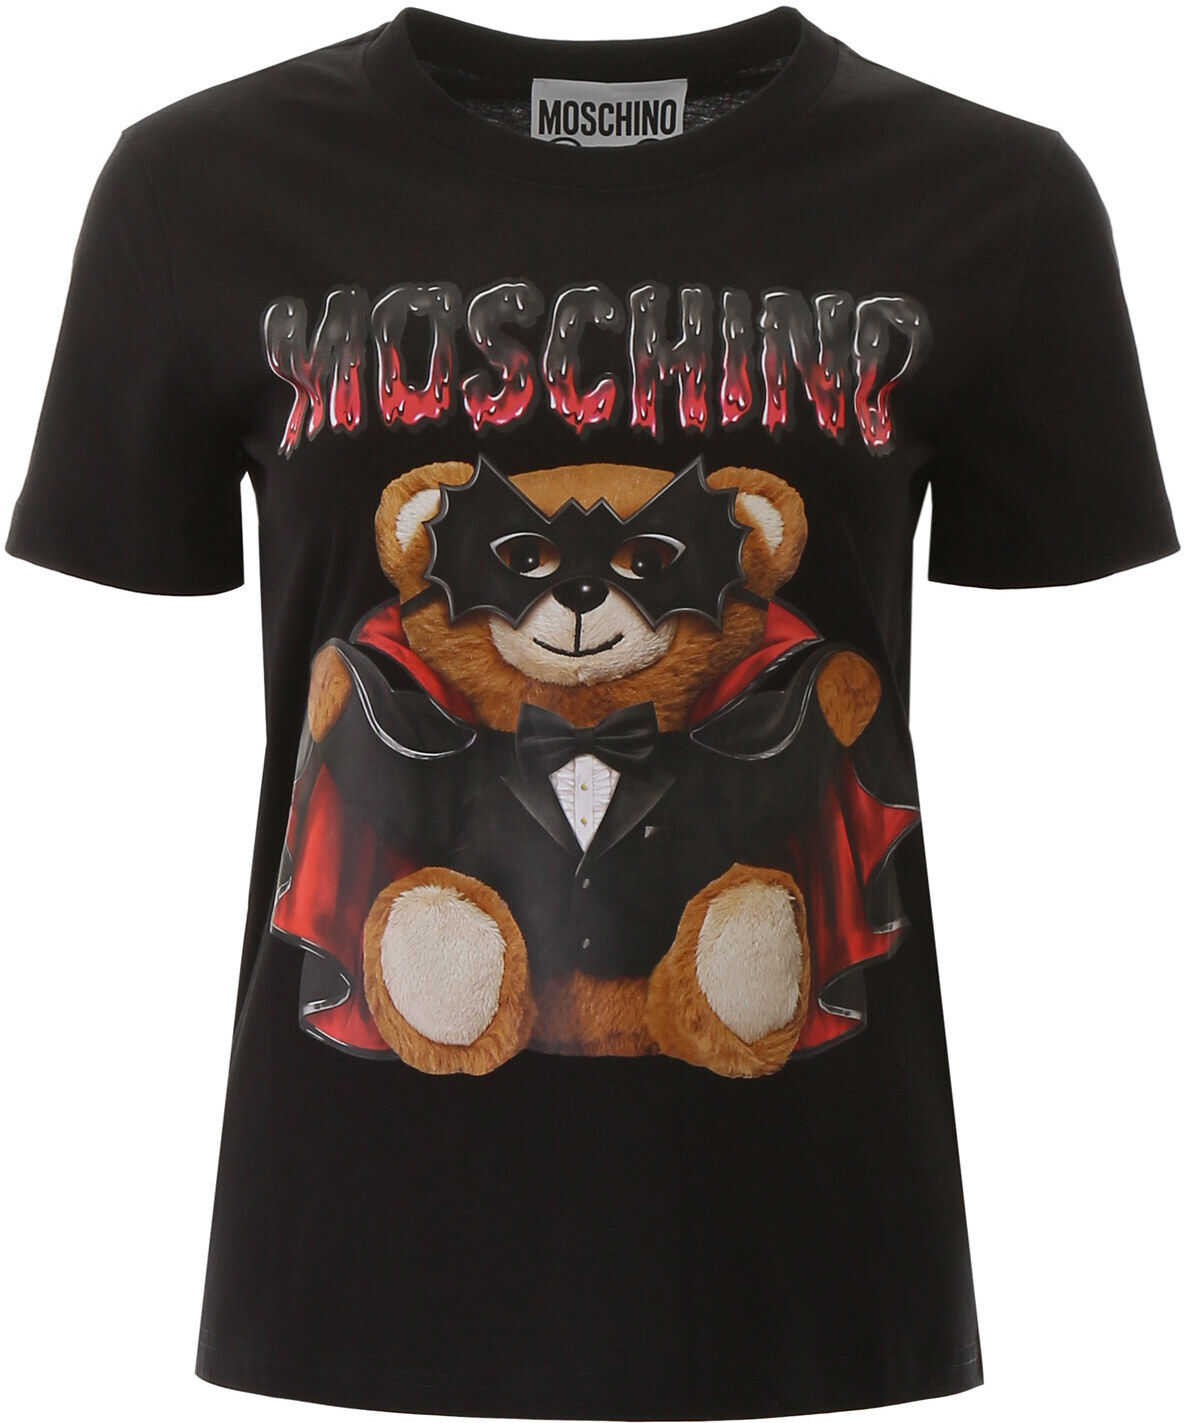 Moschino Bat Teddy Bear T-Shirt FANTASIA NERO